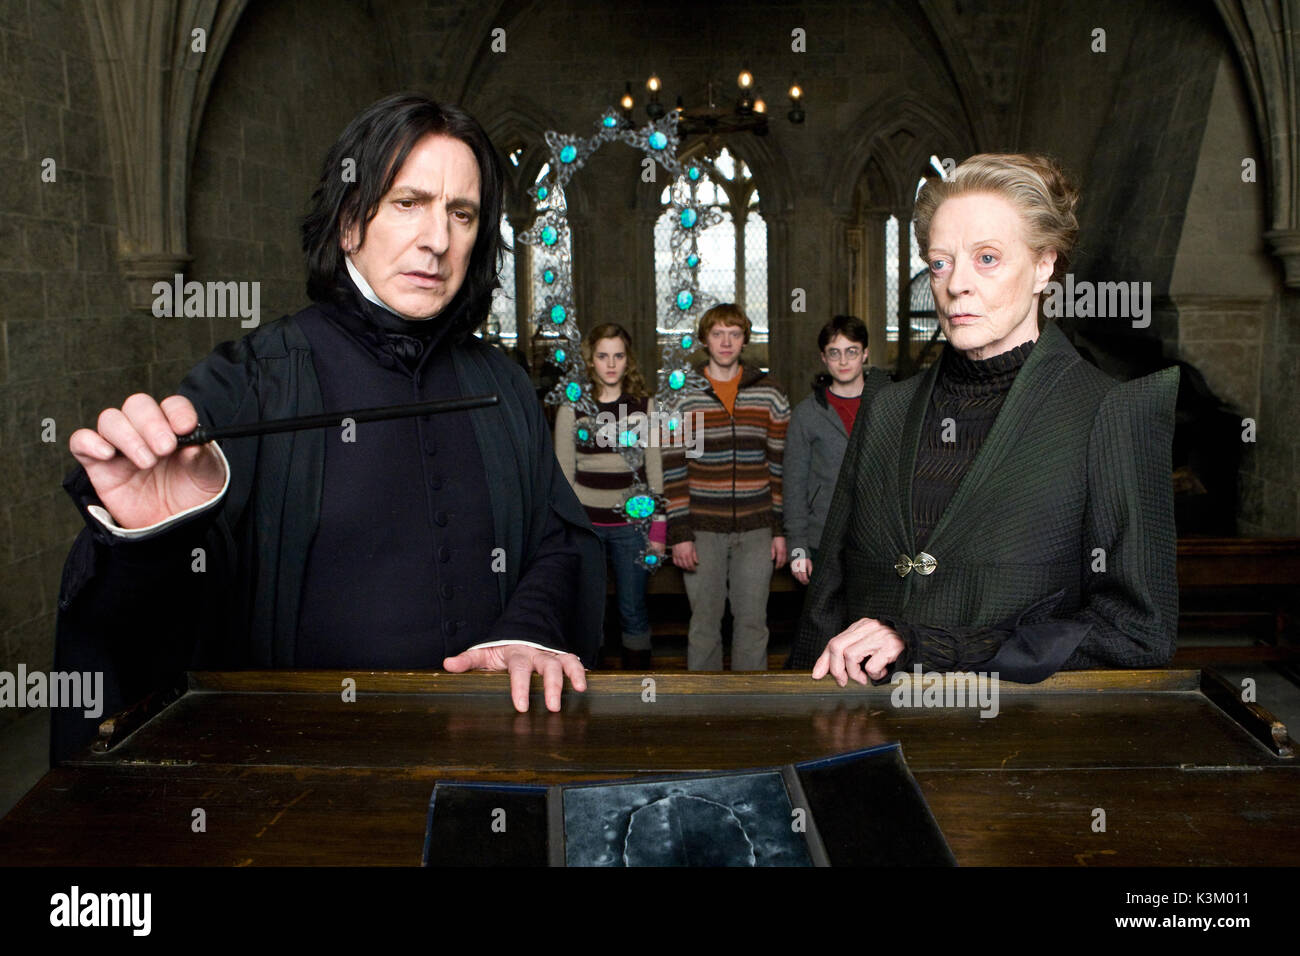 HARRY POTTER AND THE HALF BLOOD PRINCE ALAN RICKMAN as Professor Severus Snape, EMMA WATSON as Hermione Granger, RUPERT GRINT as Ron Weasley, DANIEL RADCLIFFE as Harry Potter, MAGGIE SMITH as Minerva McGonagall        Date: 2009 - Stock Image